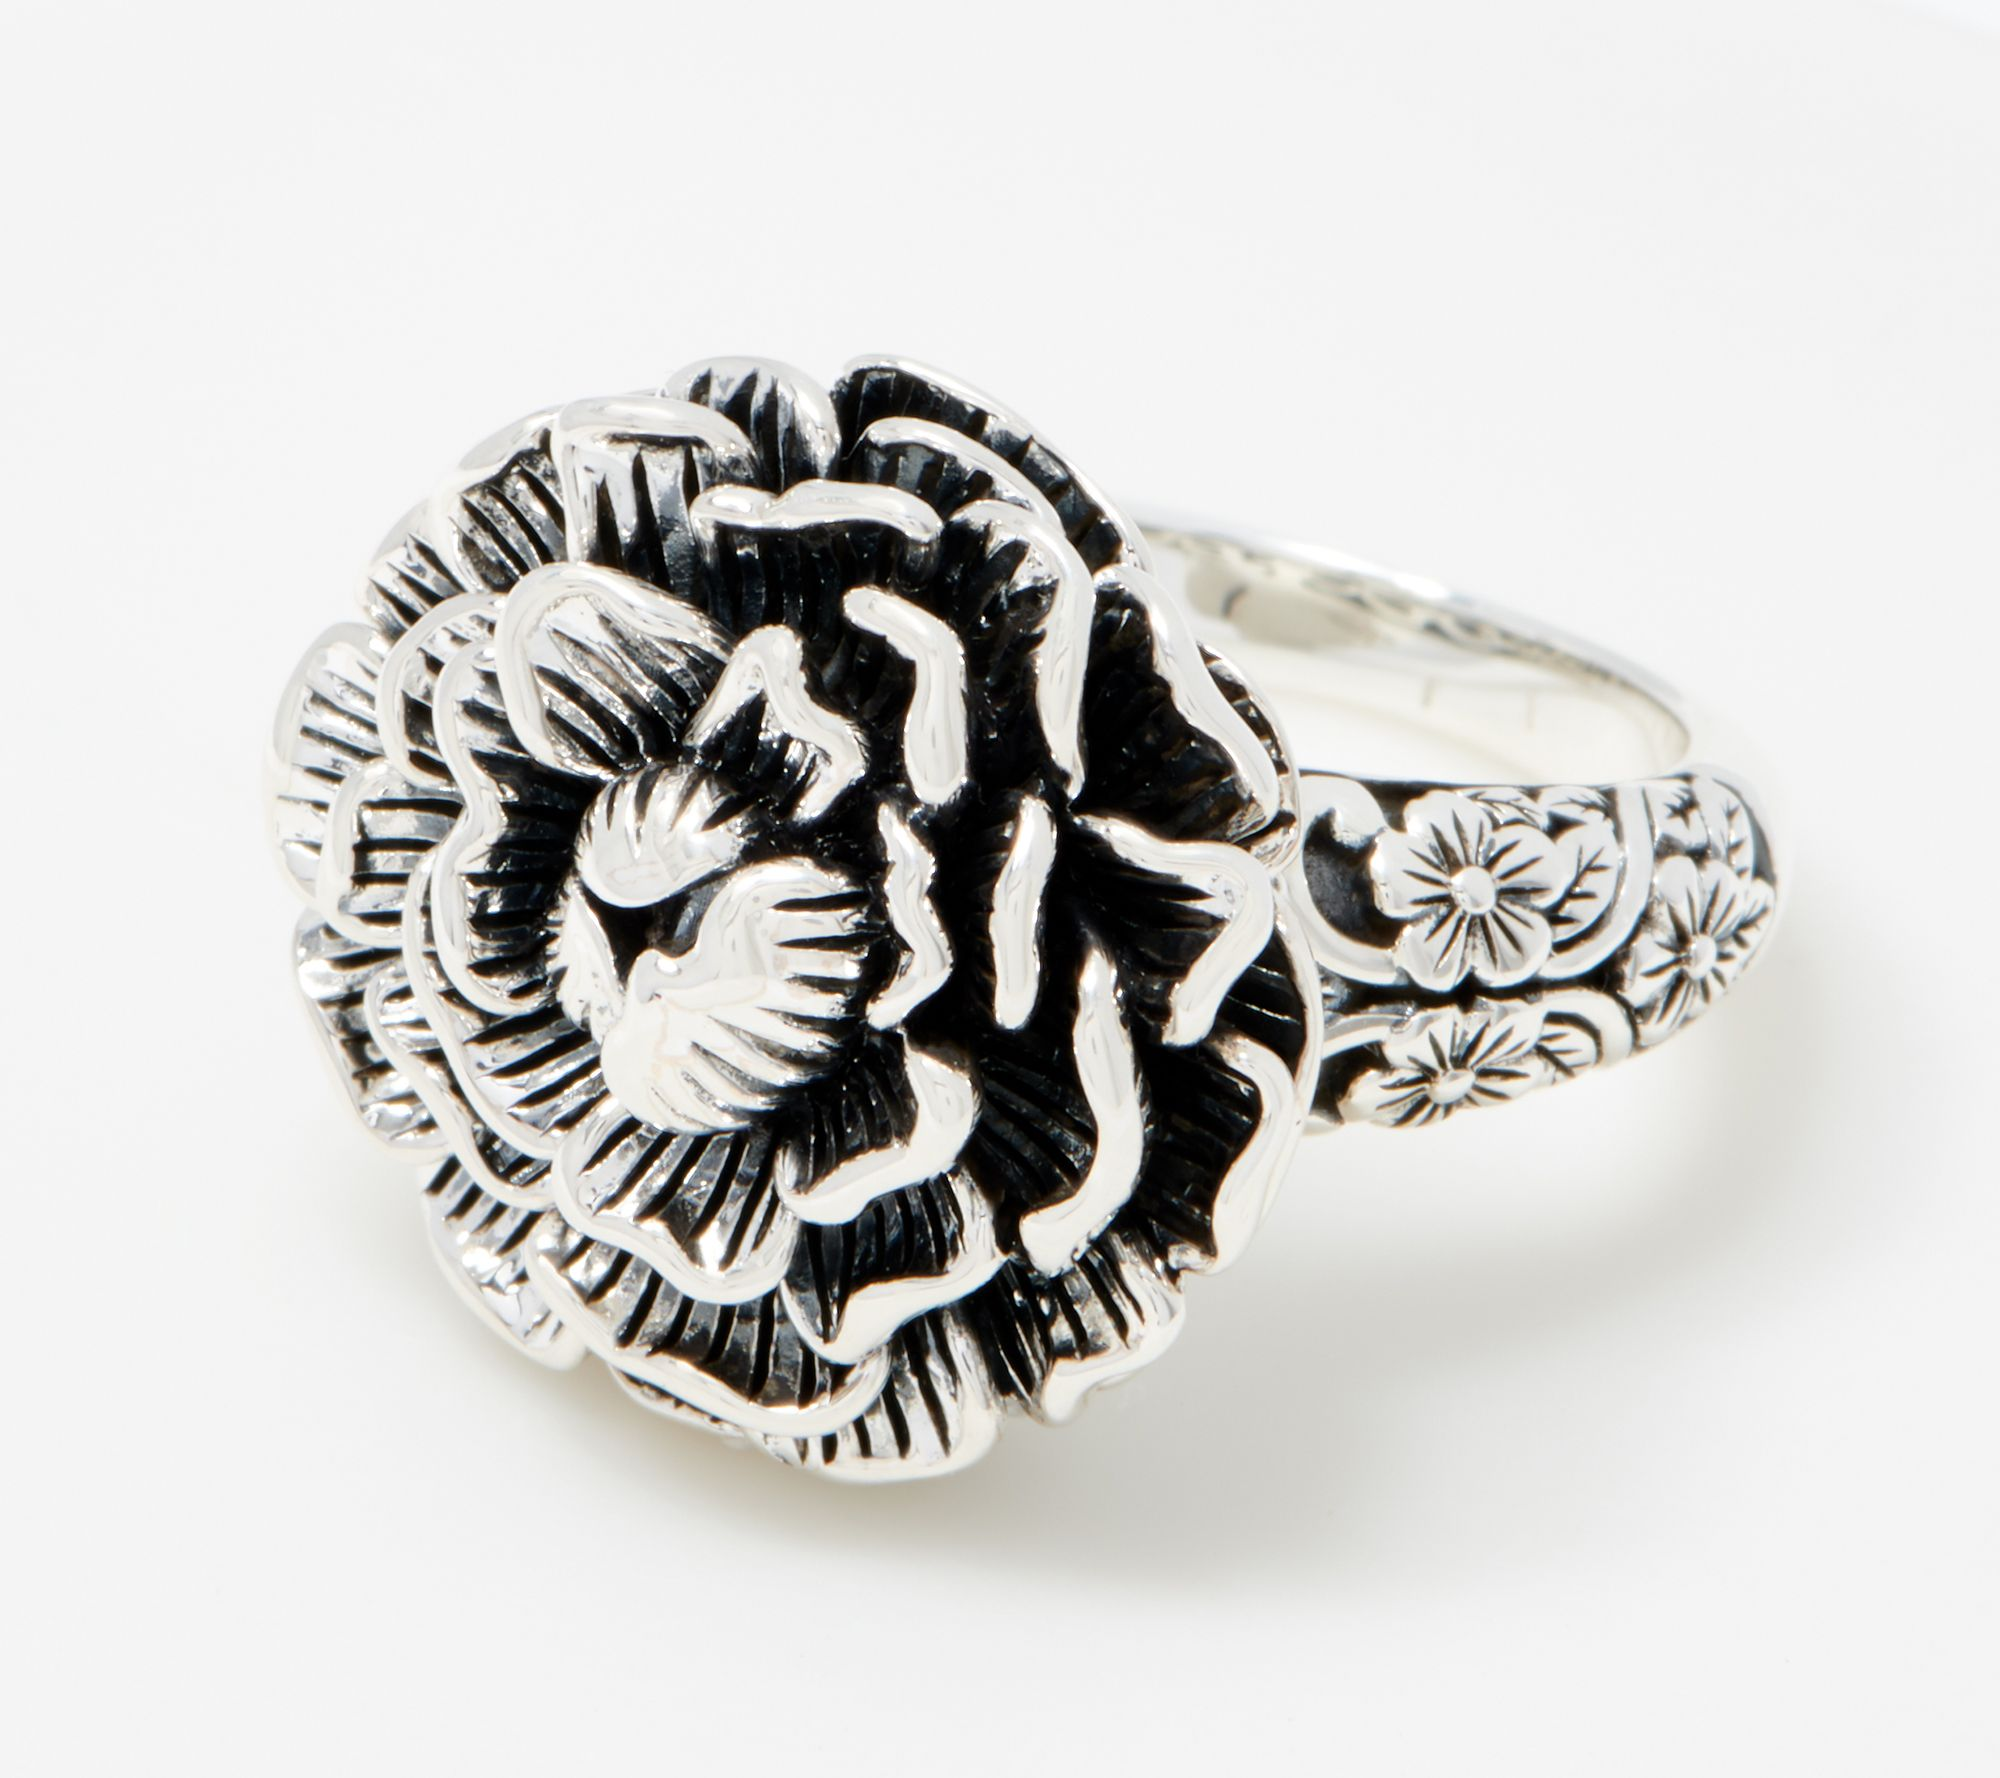 34% off this carved peony ring